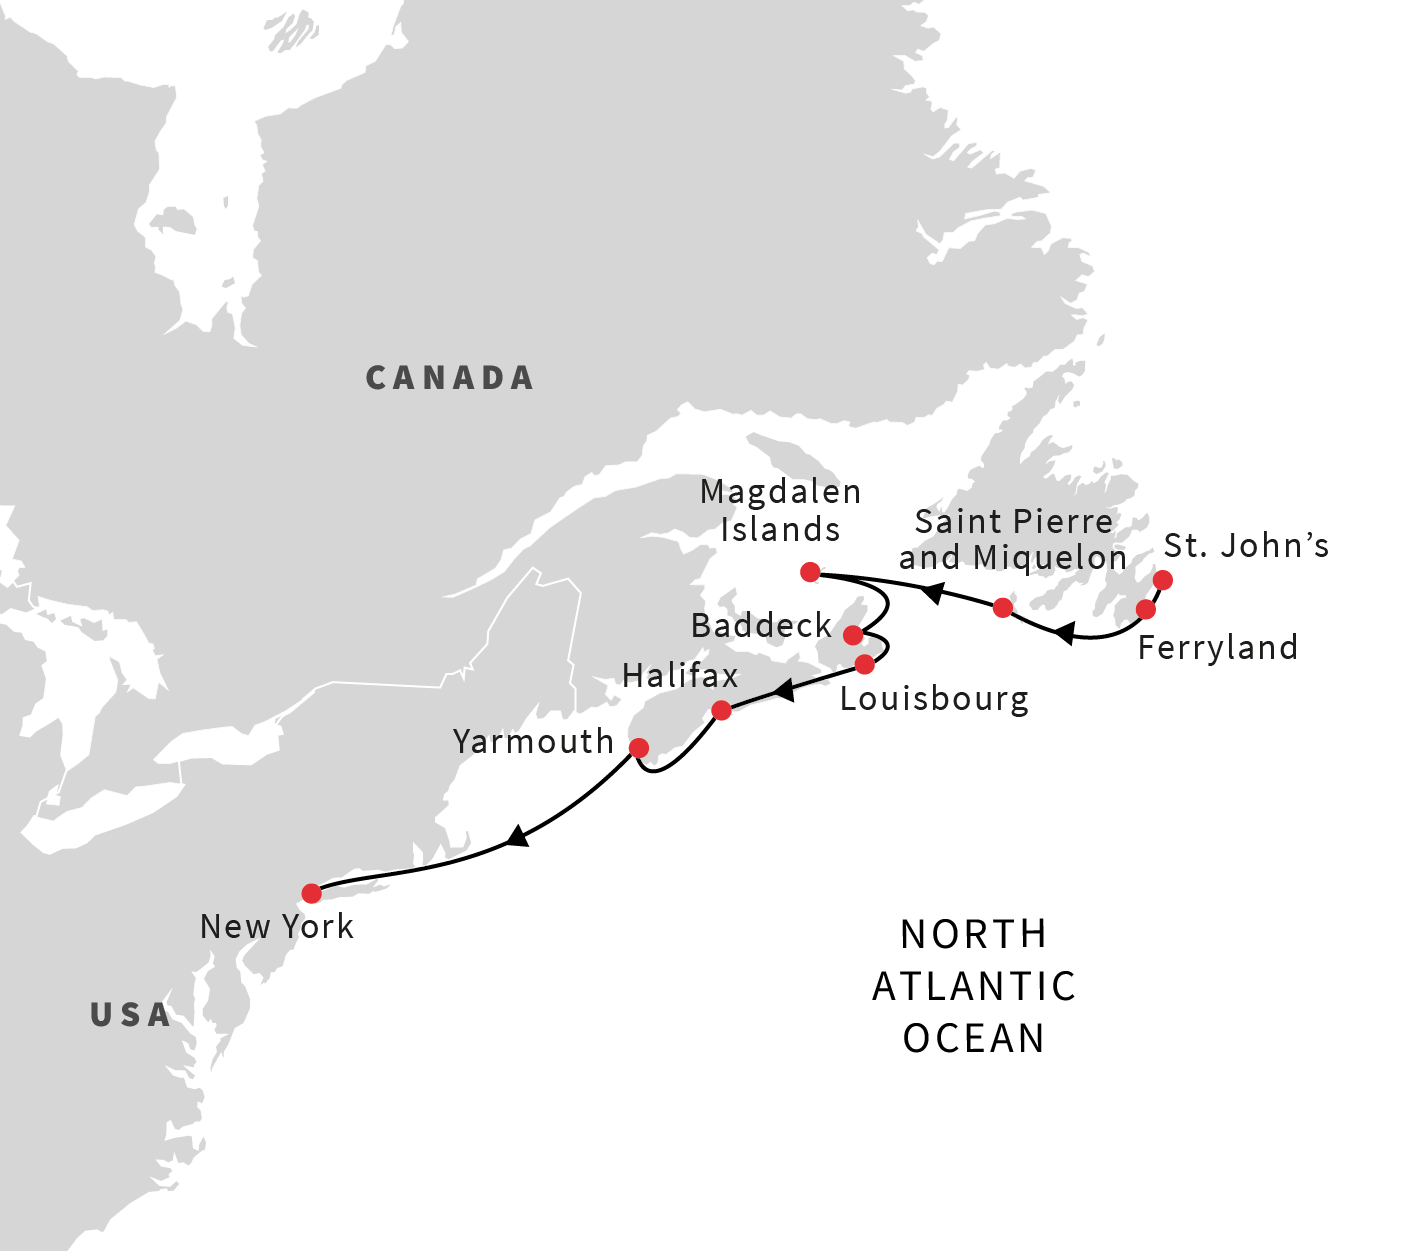 northeast u s and atlantic canada exploring canadian maritimes southbound